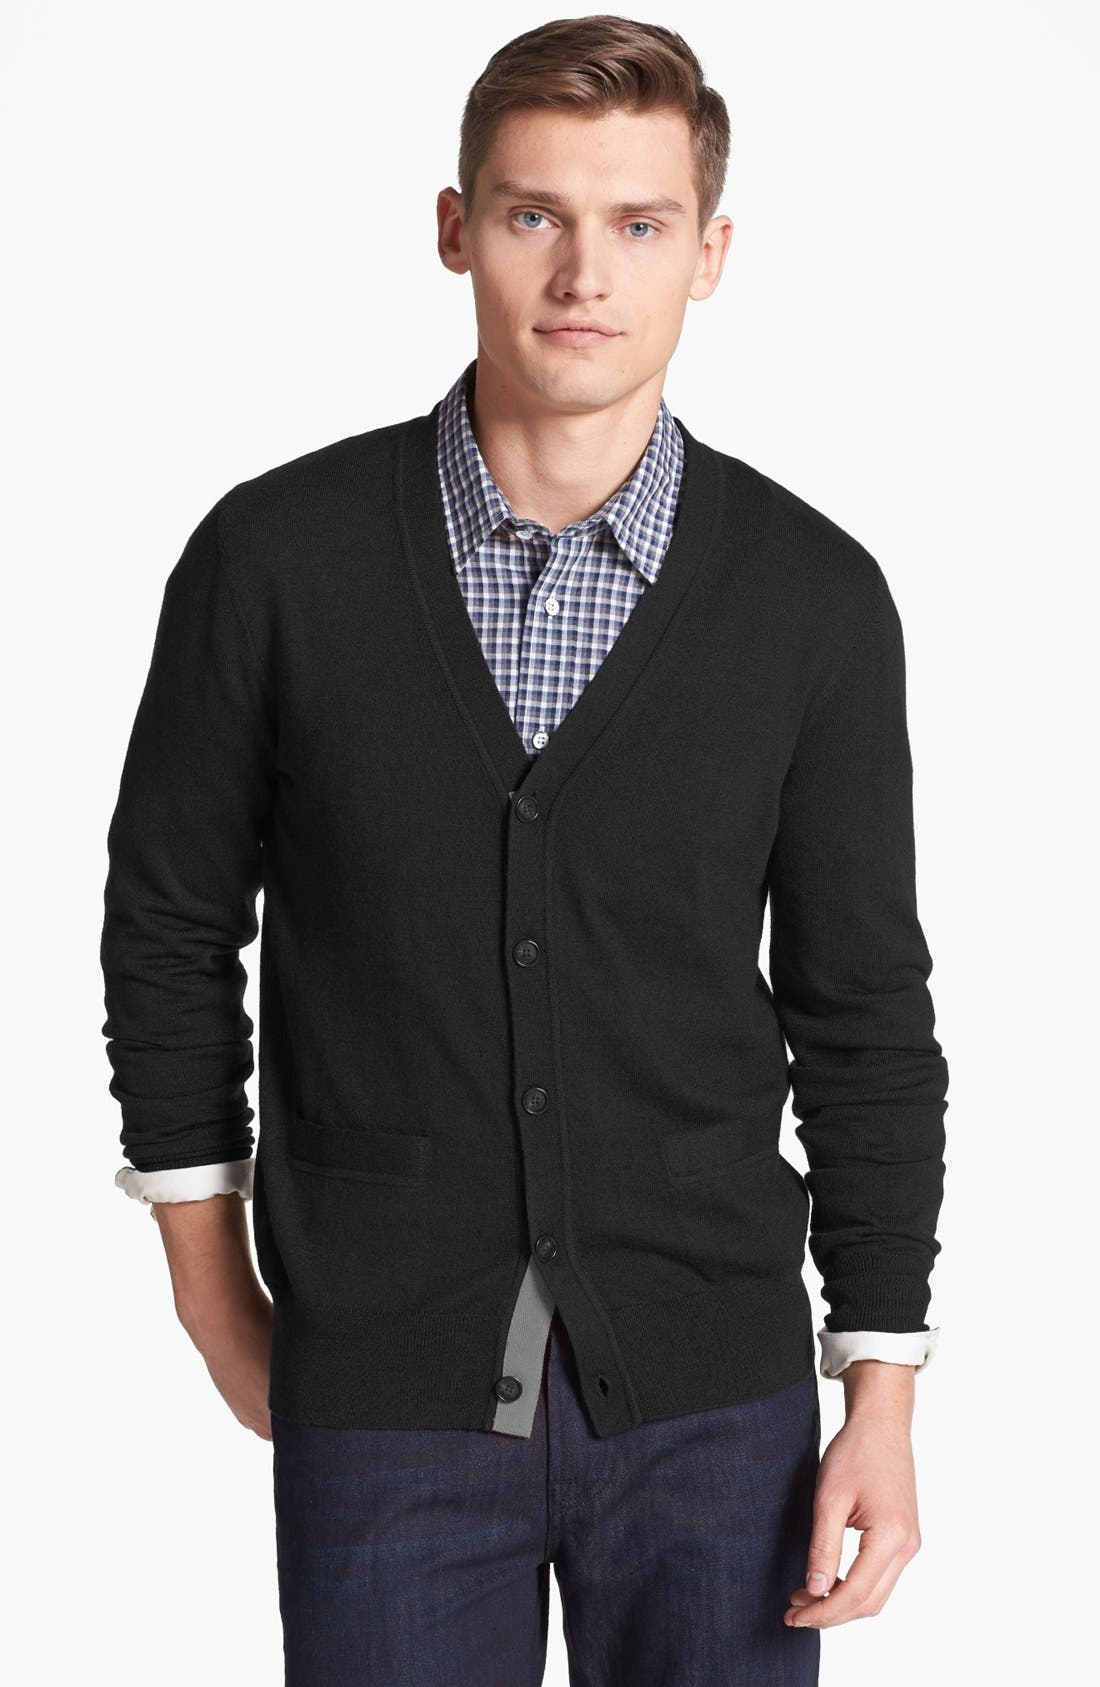 Alternate Image 1 Selected - Jack Spade 'Brockman' Merino Wool Cardigan